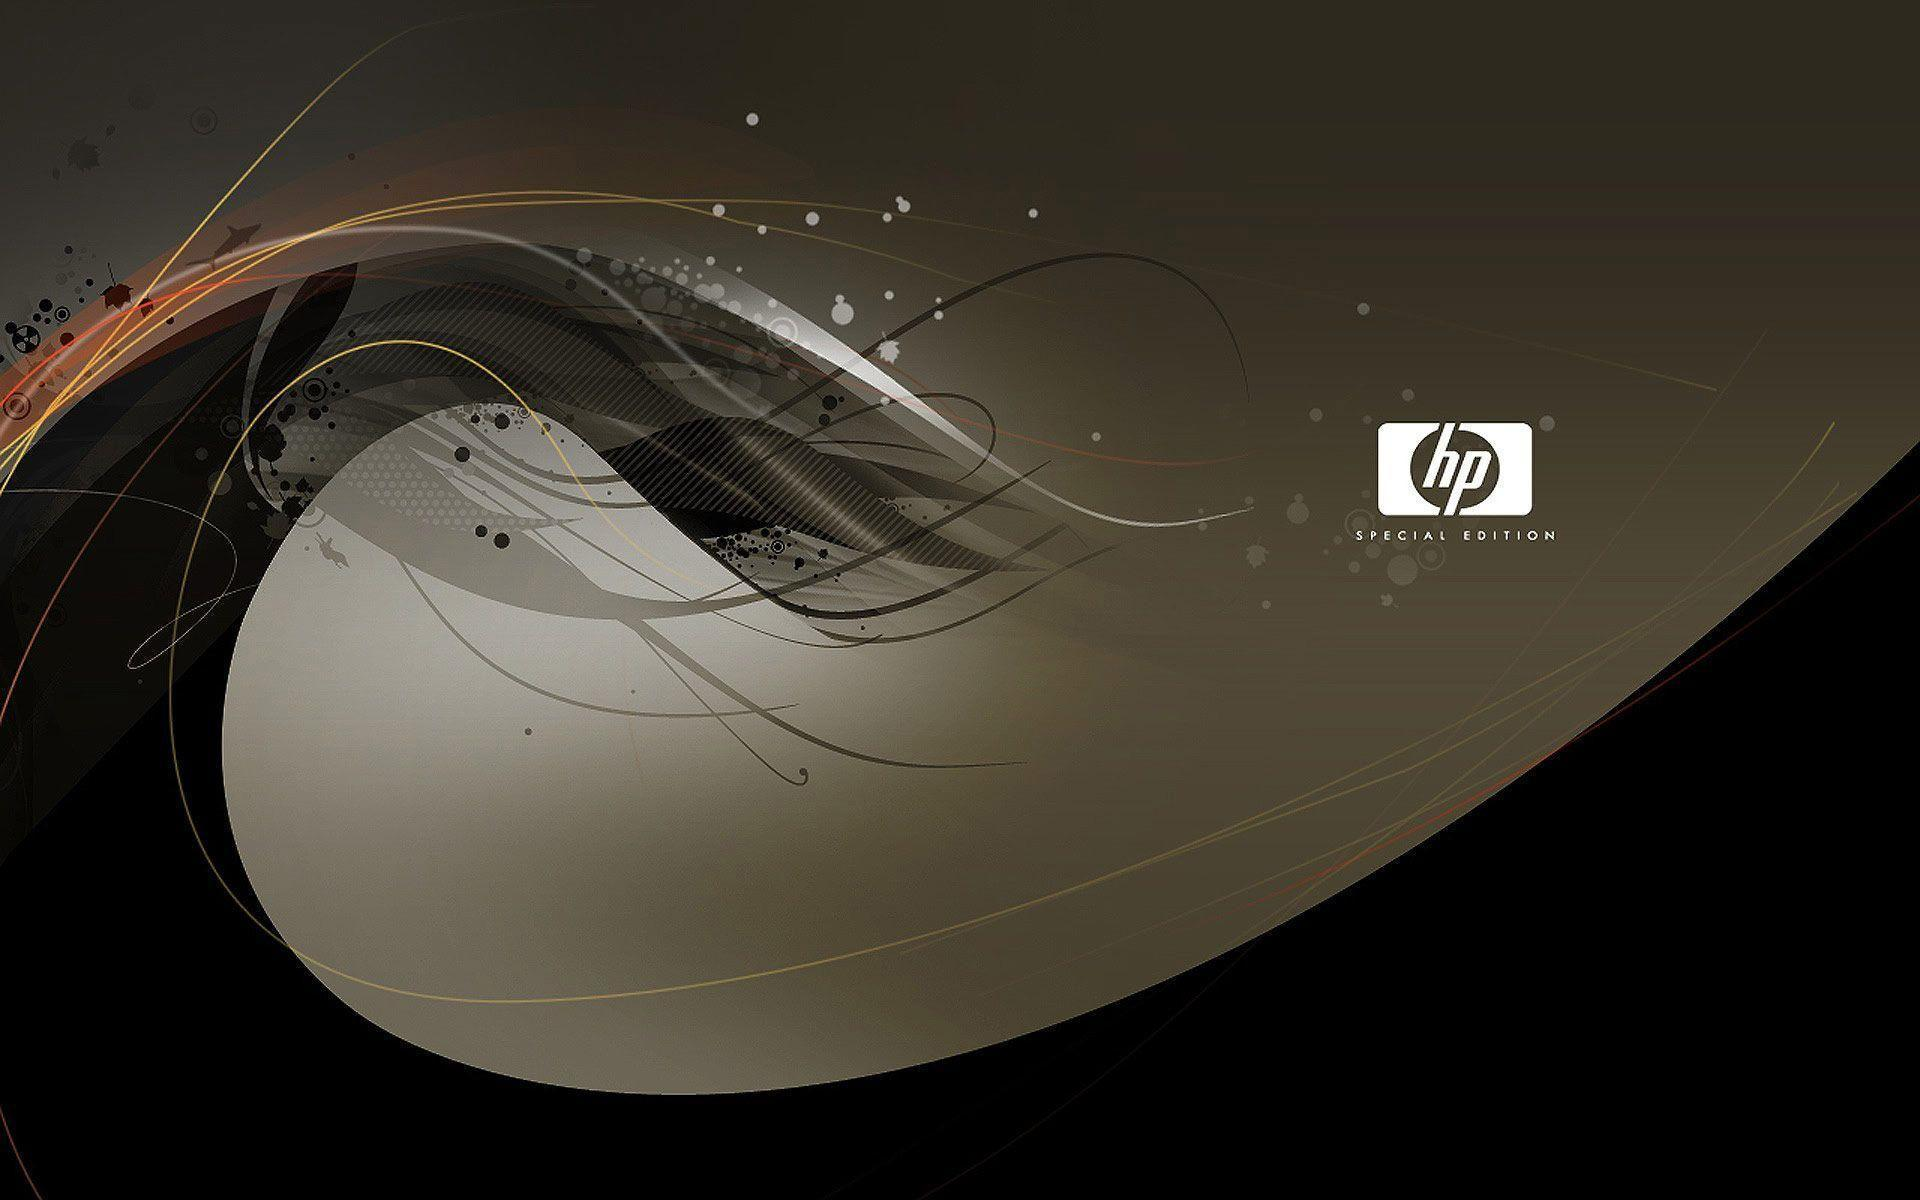 hp desktop background wallpaper www